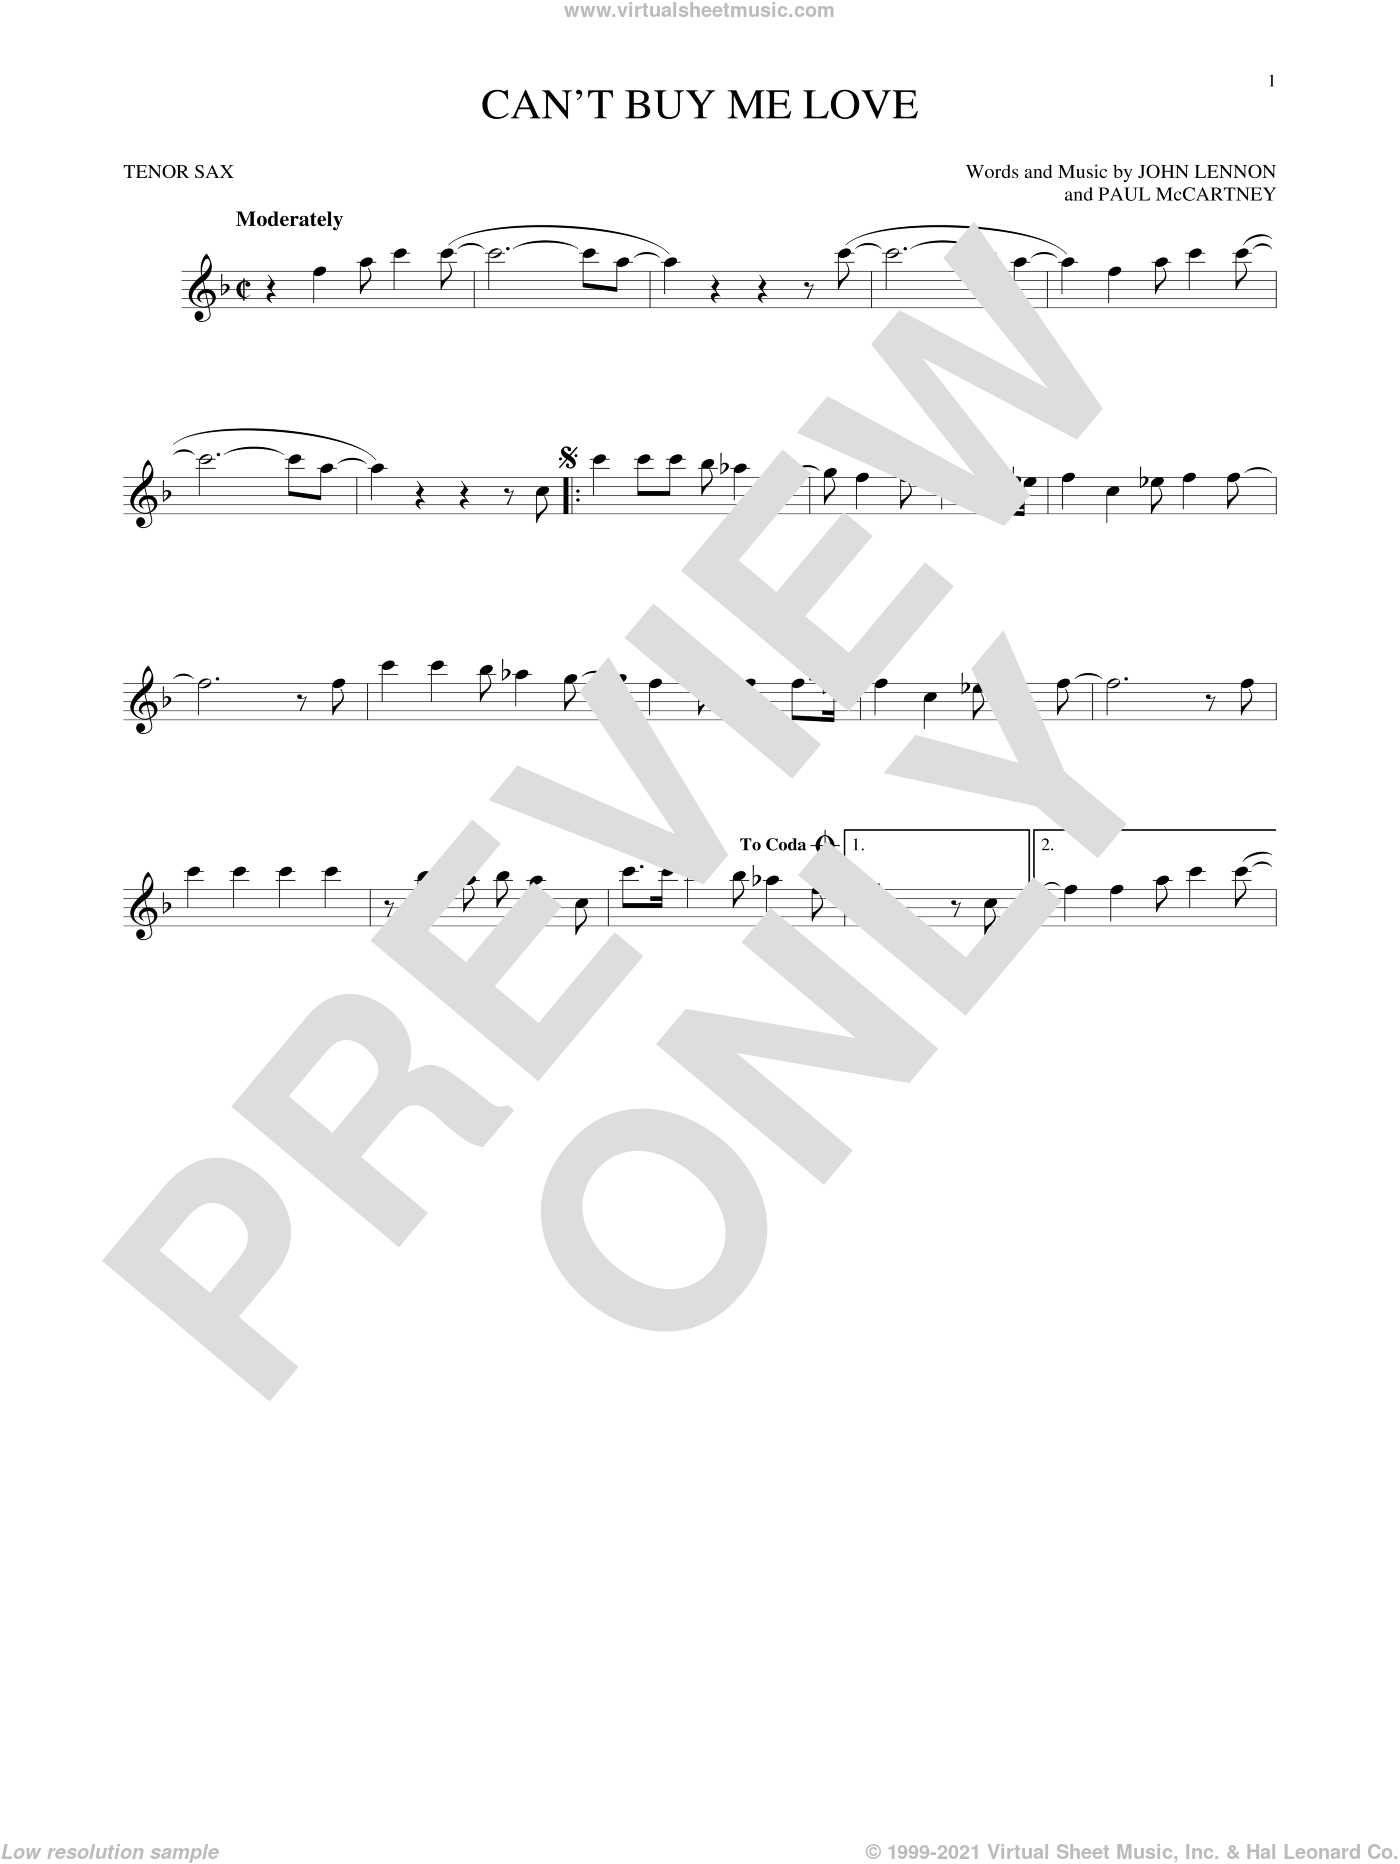 Can't Buy Me Love sheet music for tenor saxophone solo by The Beatles, John Lennon and Paul McCartney, intermediate skill level